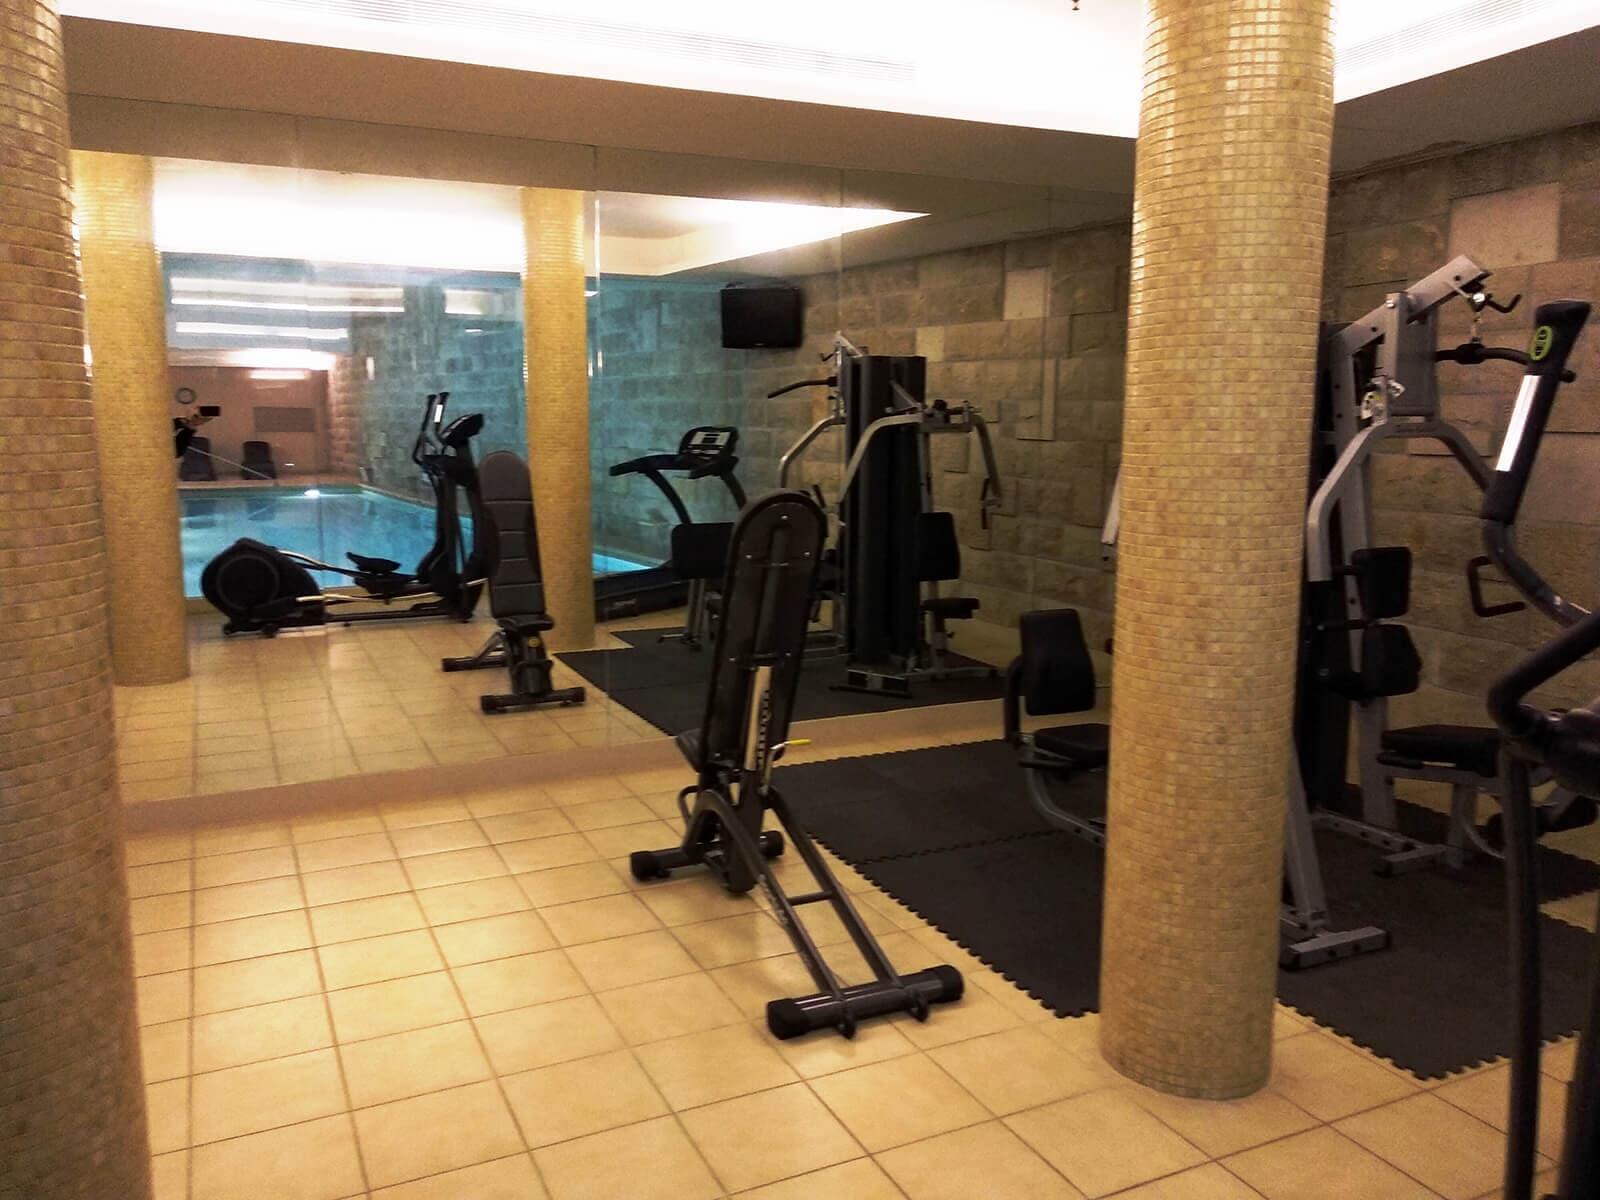 Gym and fitness rooms